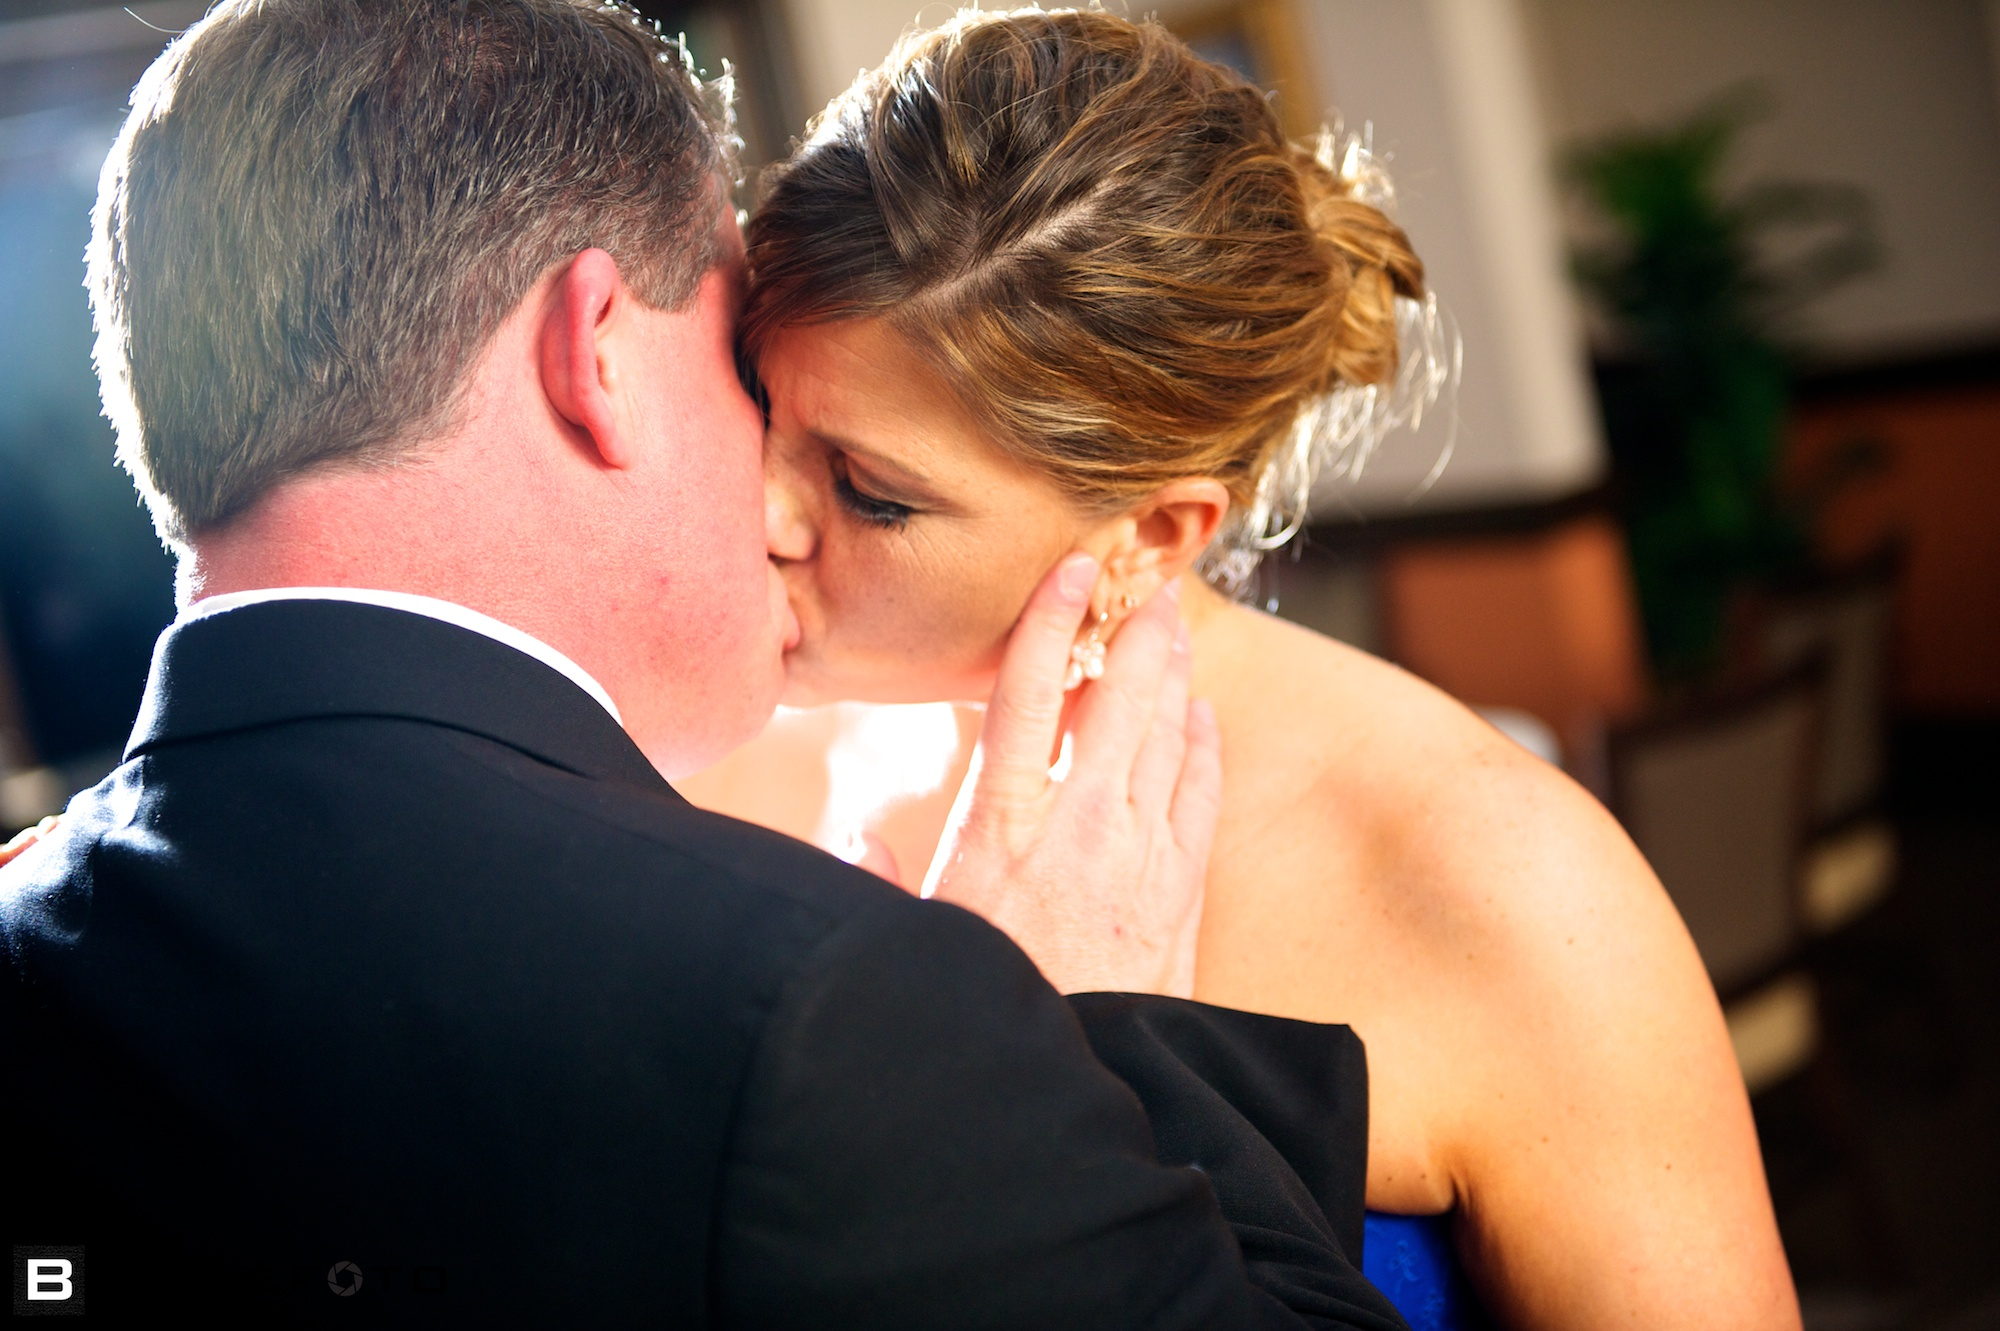 Teresa_Eric_Wedding_Columbia_SC_17.jpg